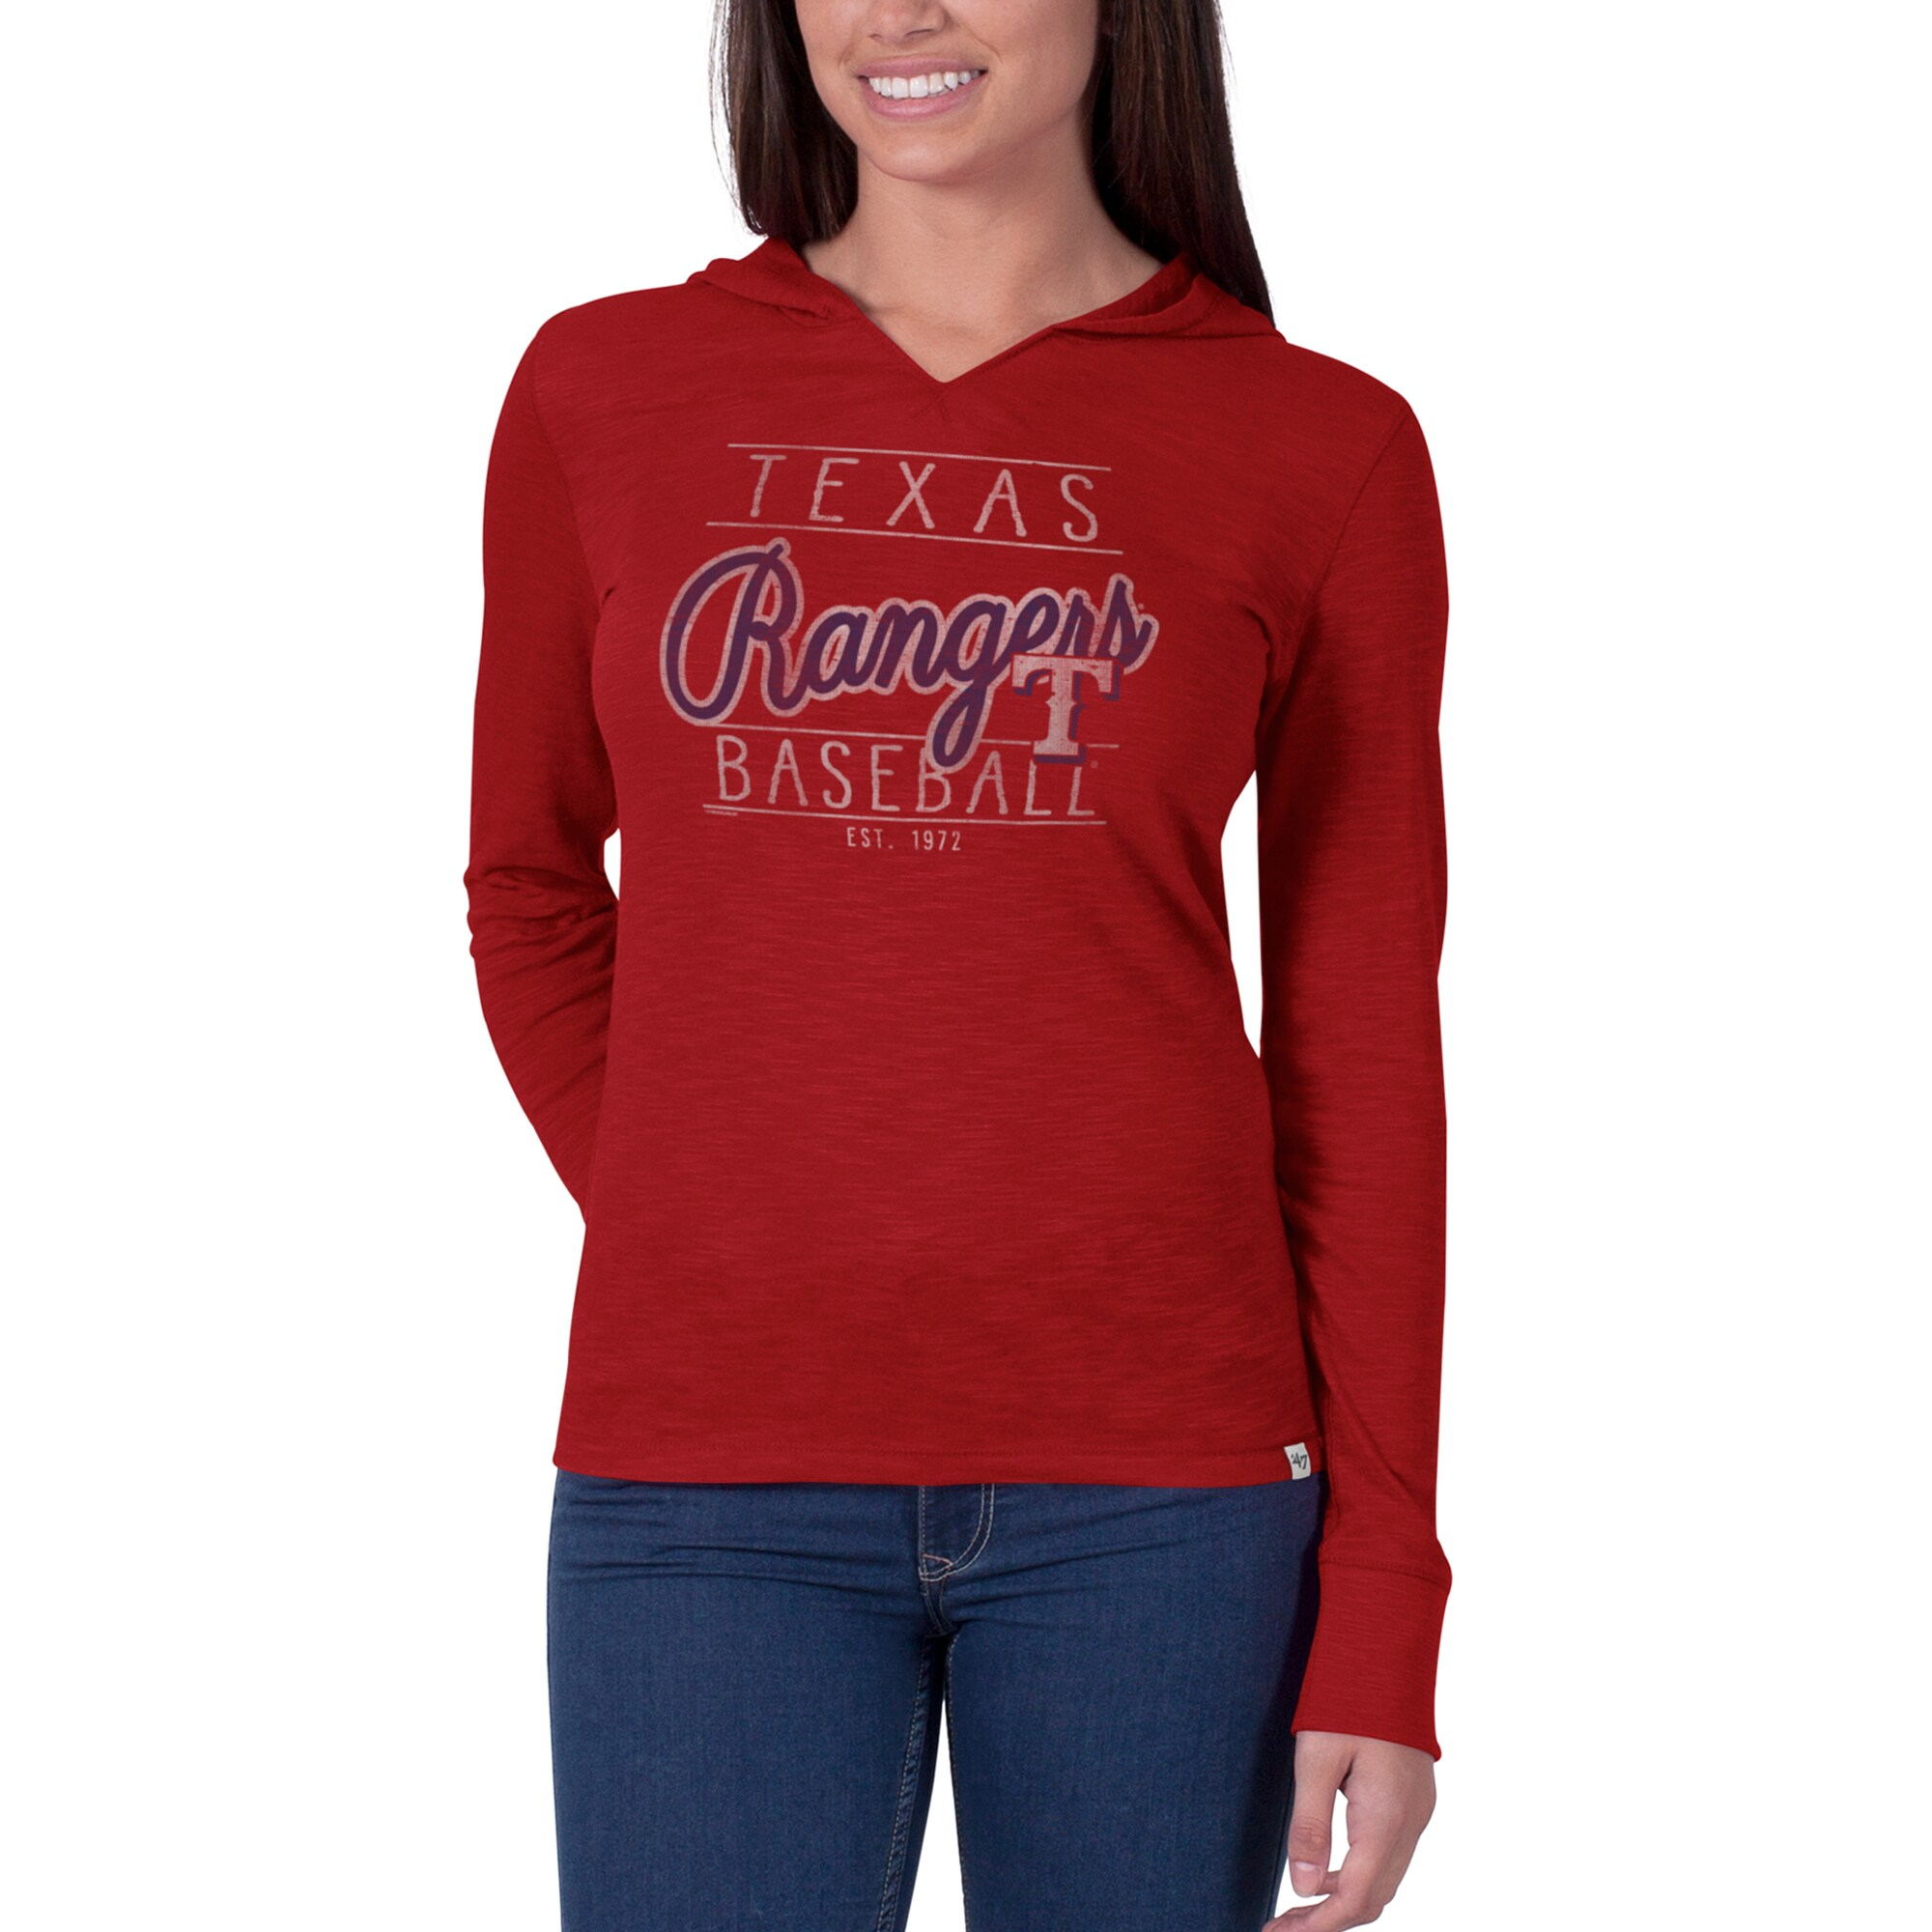 Texas Rangers '47 Women's Primetime II Long Sleeve Hoodie V-Neck T-Shirt - Red